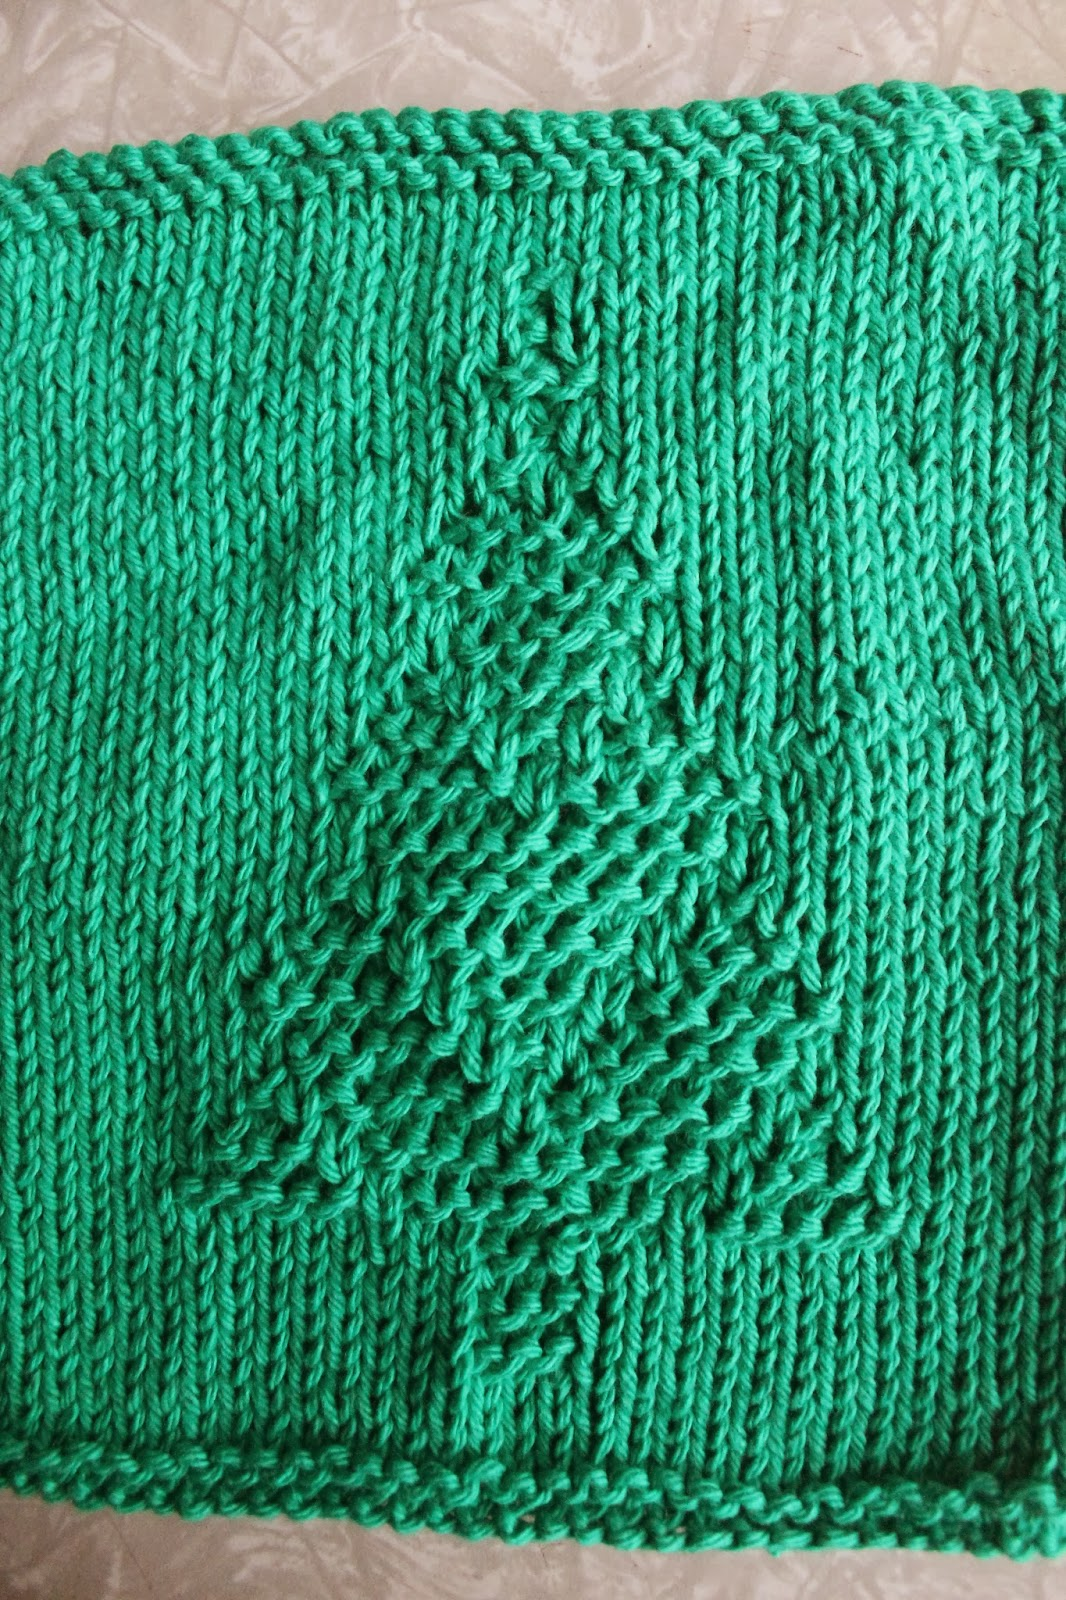 Everyday Life at Leisure: Weekly Dishcloth: Knitting the Christmas Tree Pattern